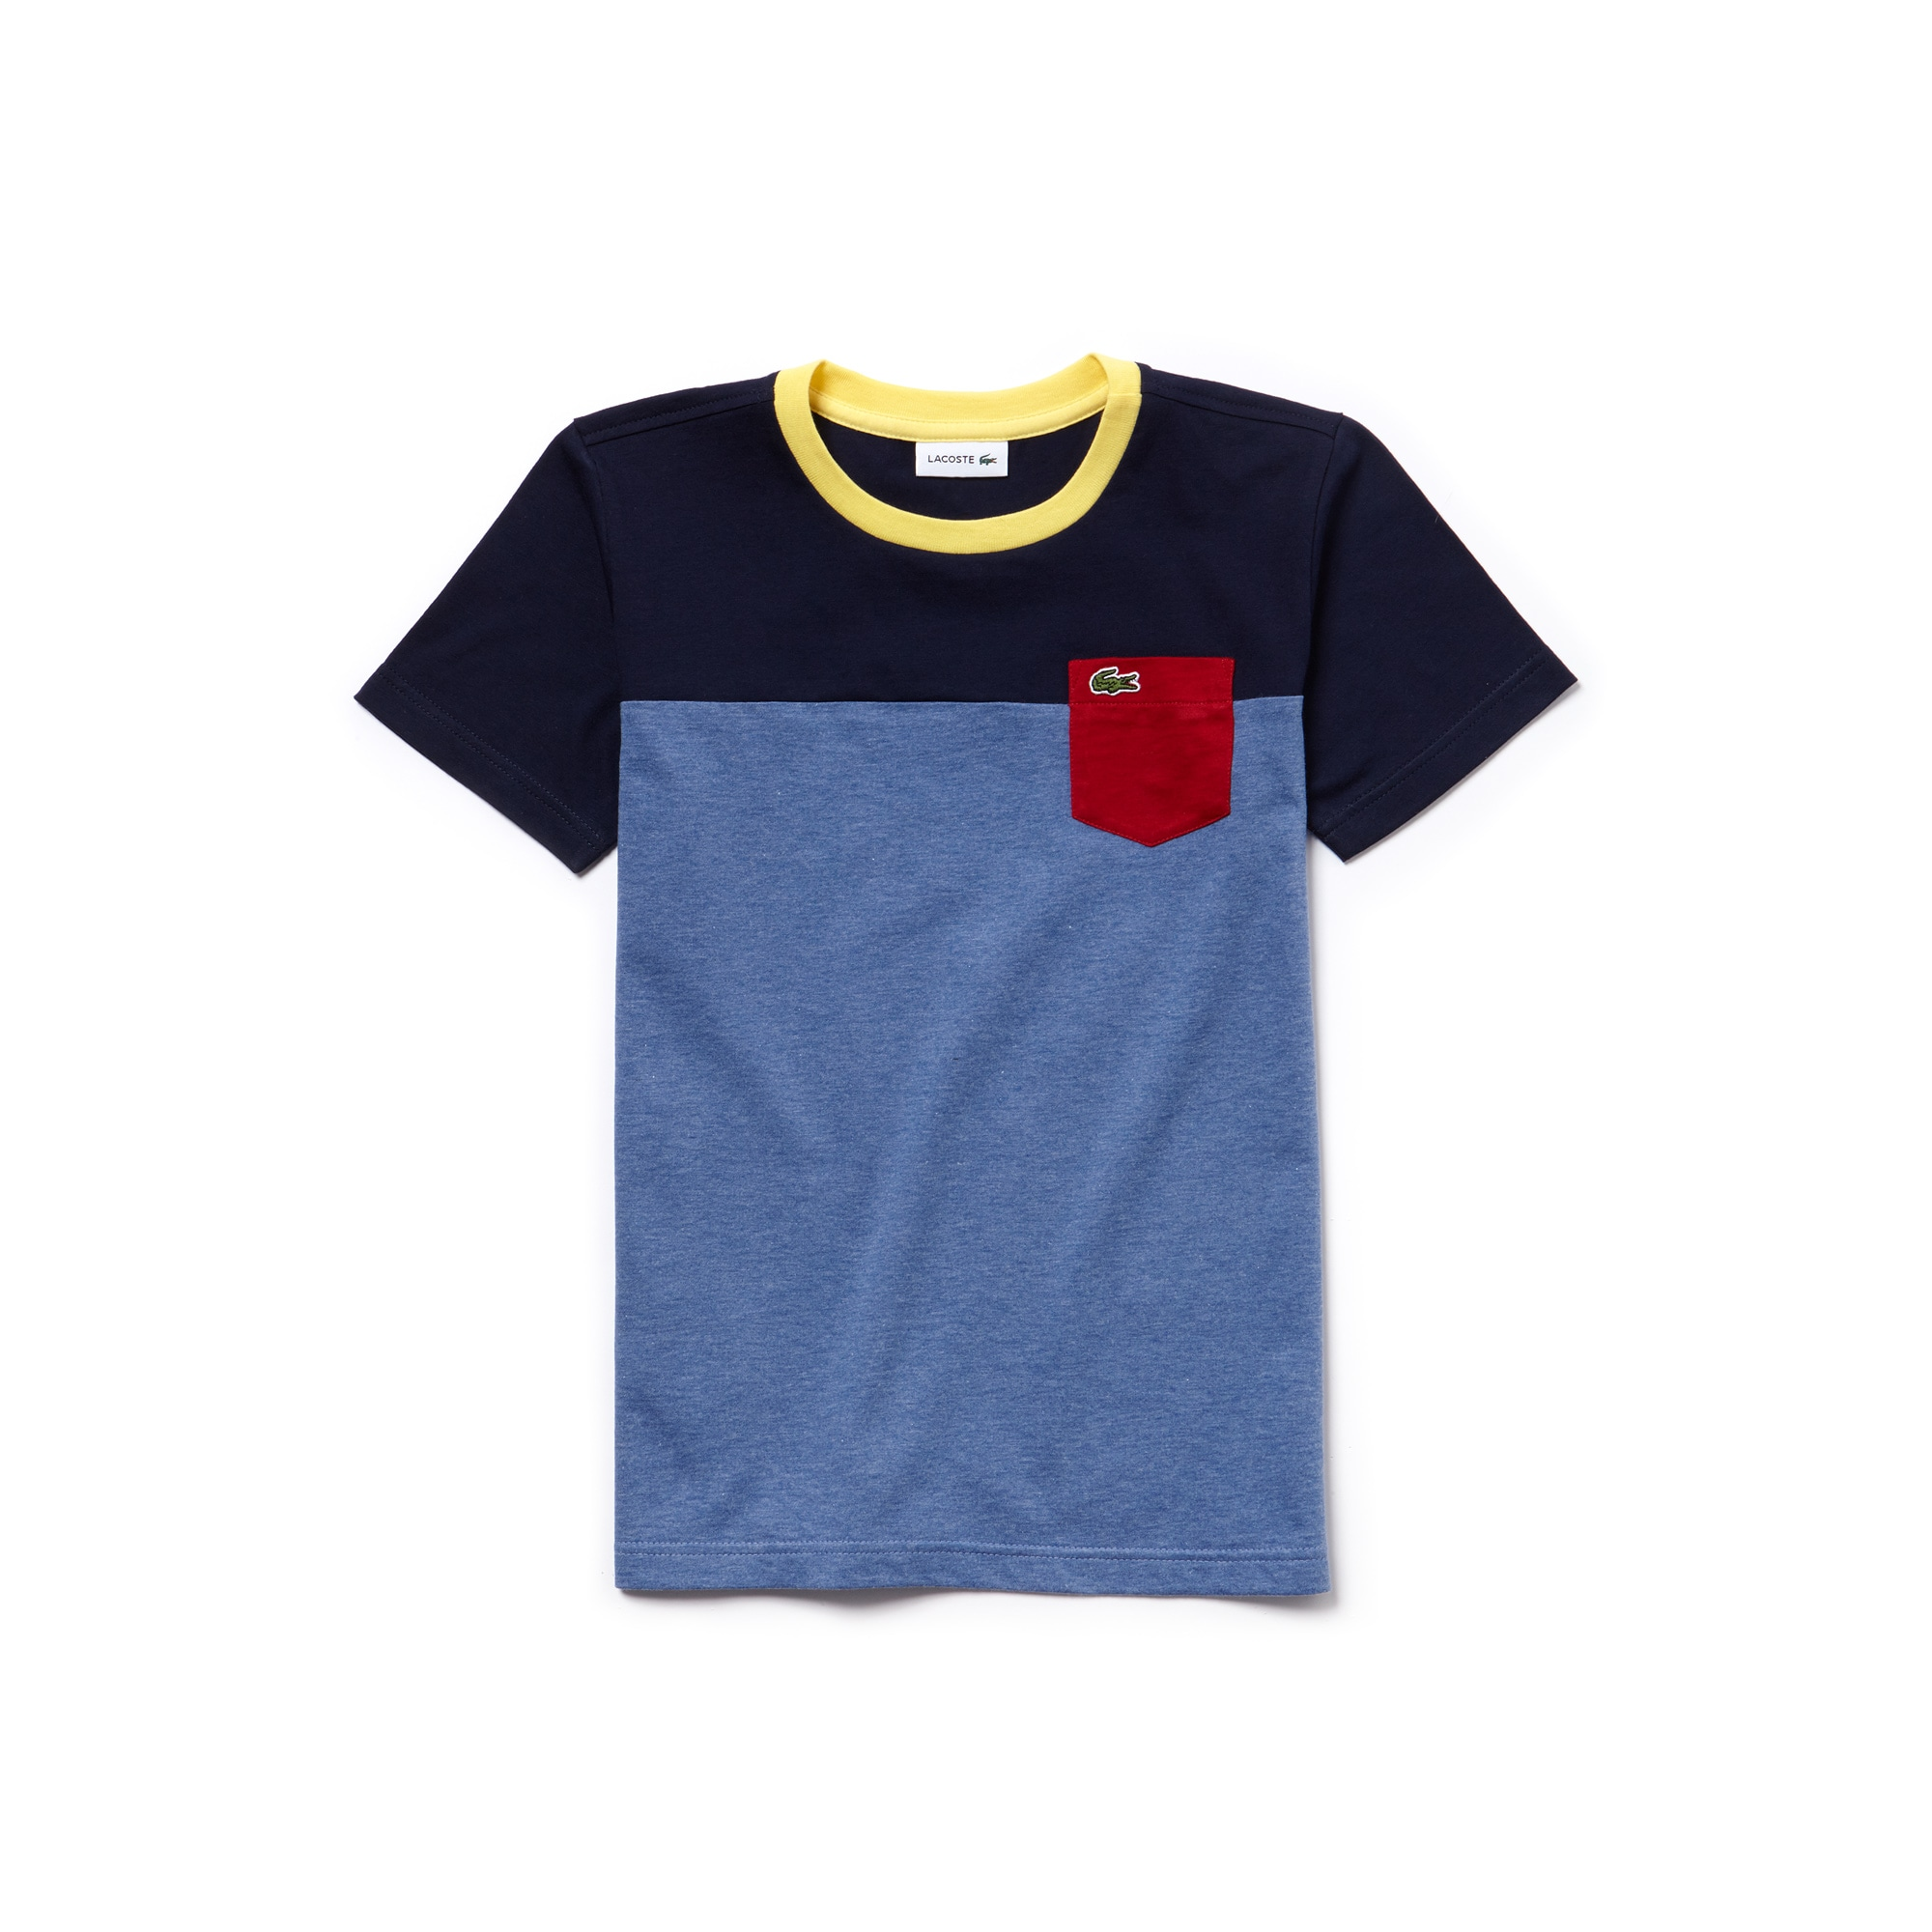 Boys' Colorblock Cotton Jersey T-shirt